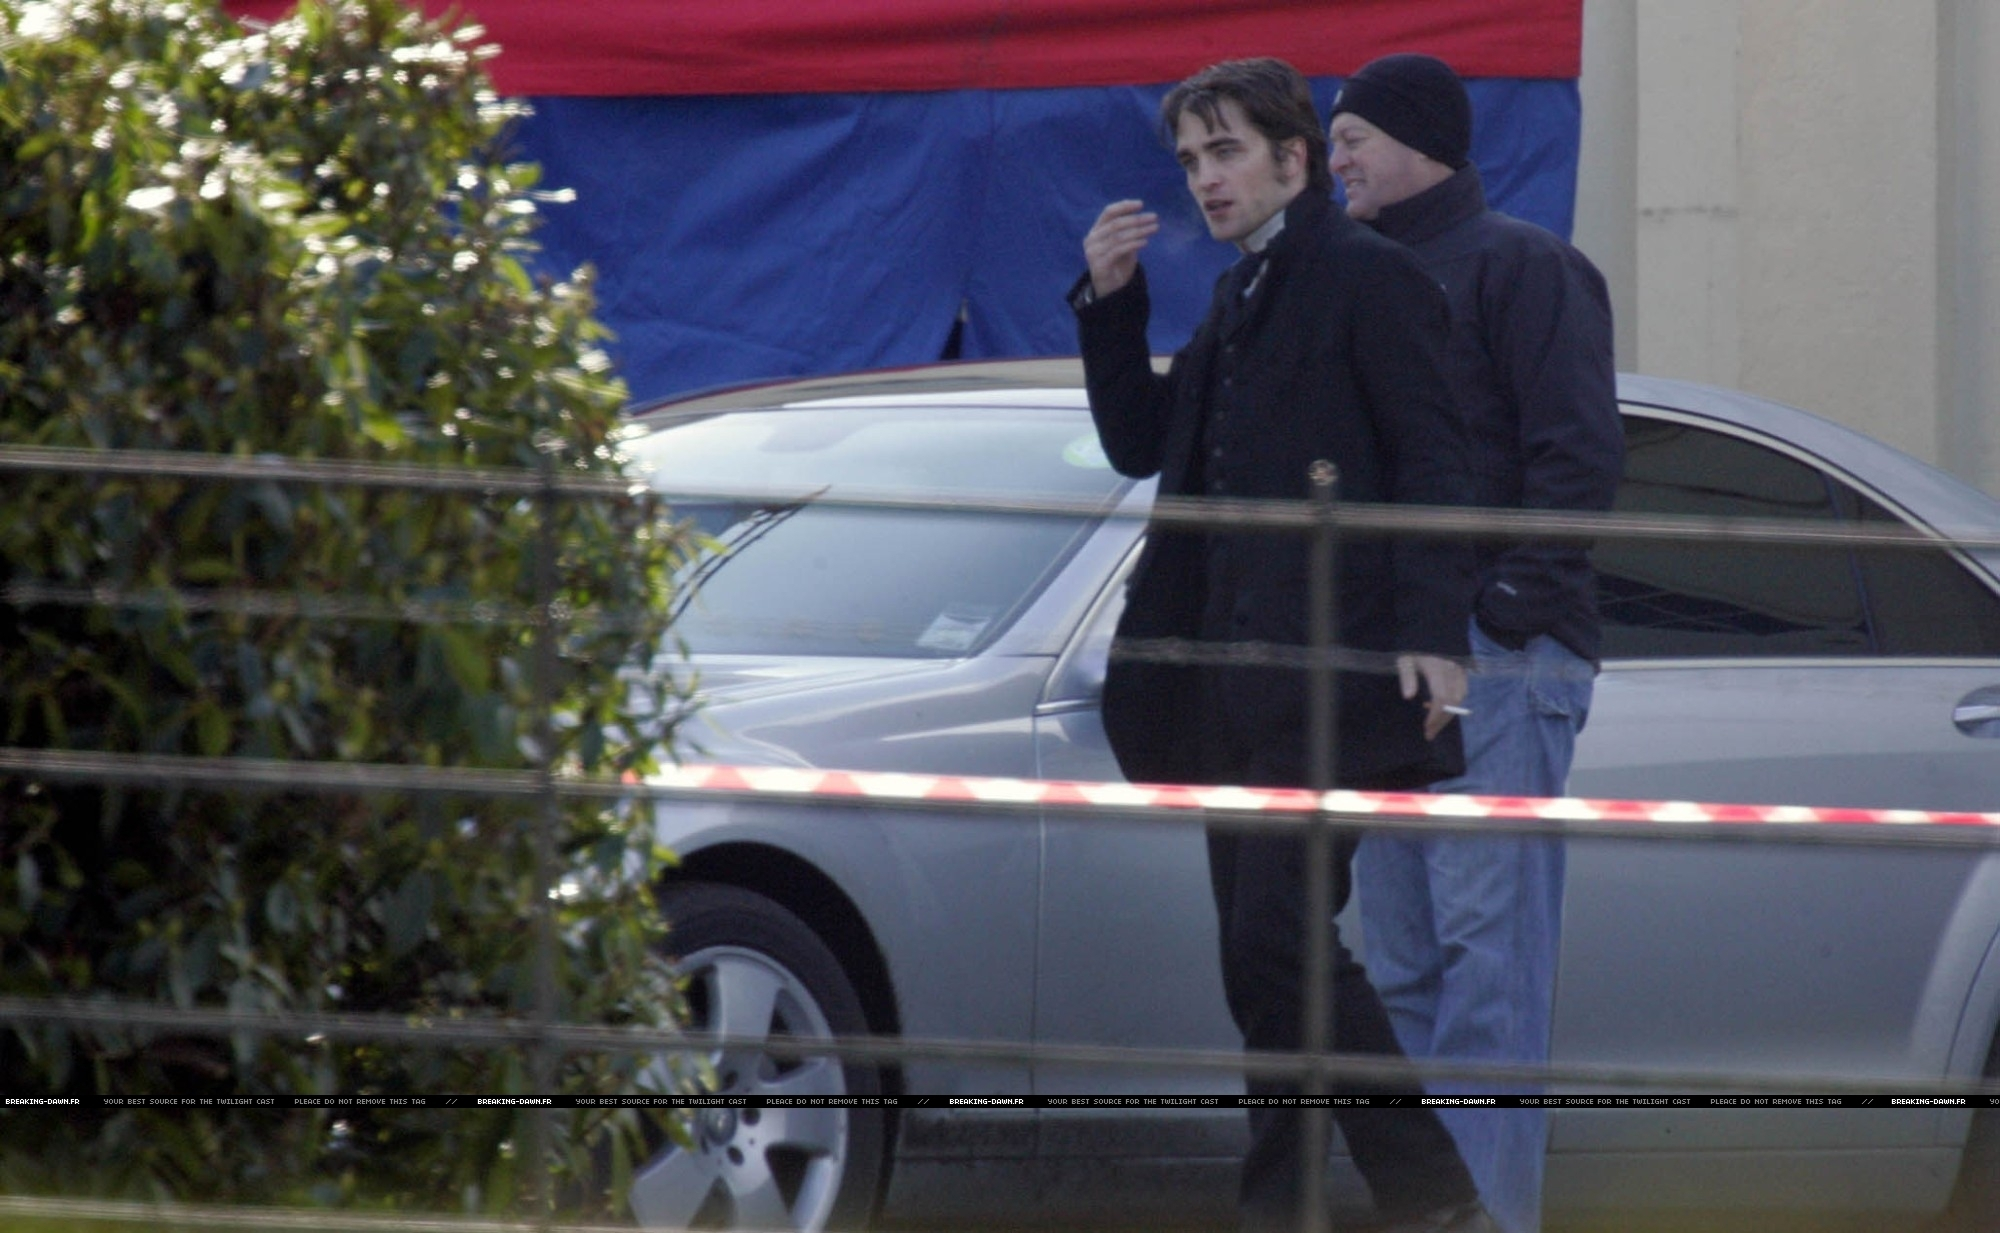 First Pics from Bel Ami Set: Robert Pattinson is Georges Duroy